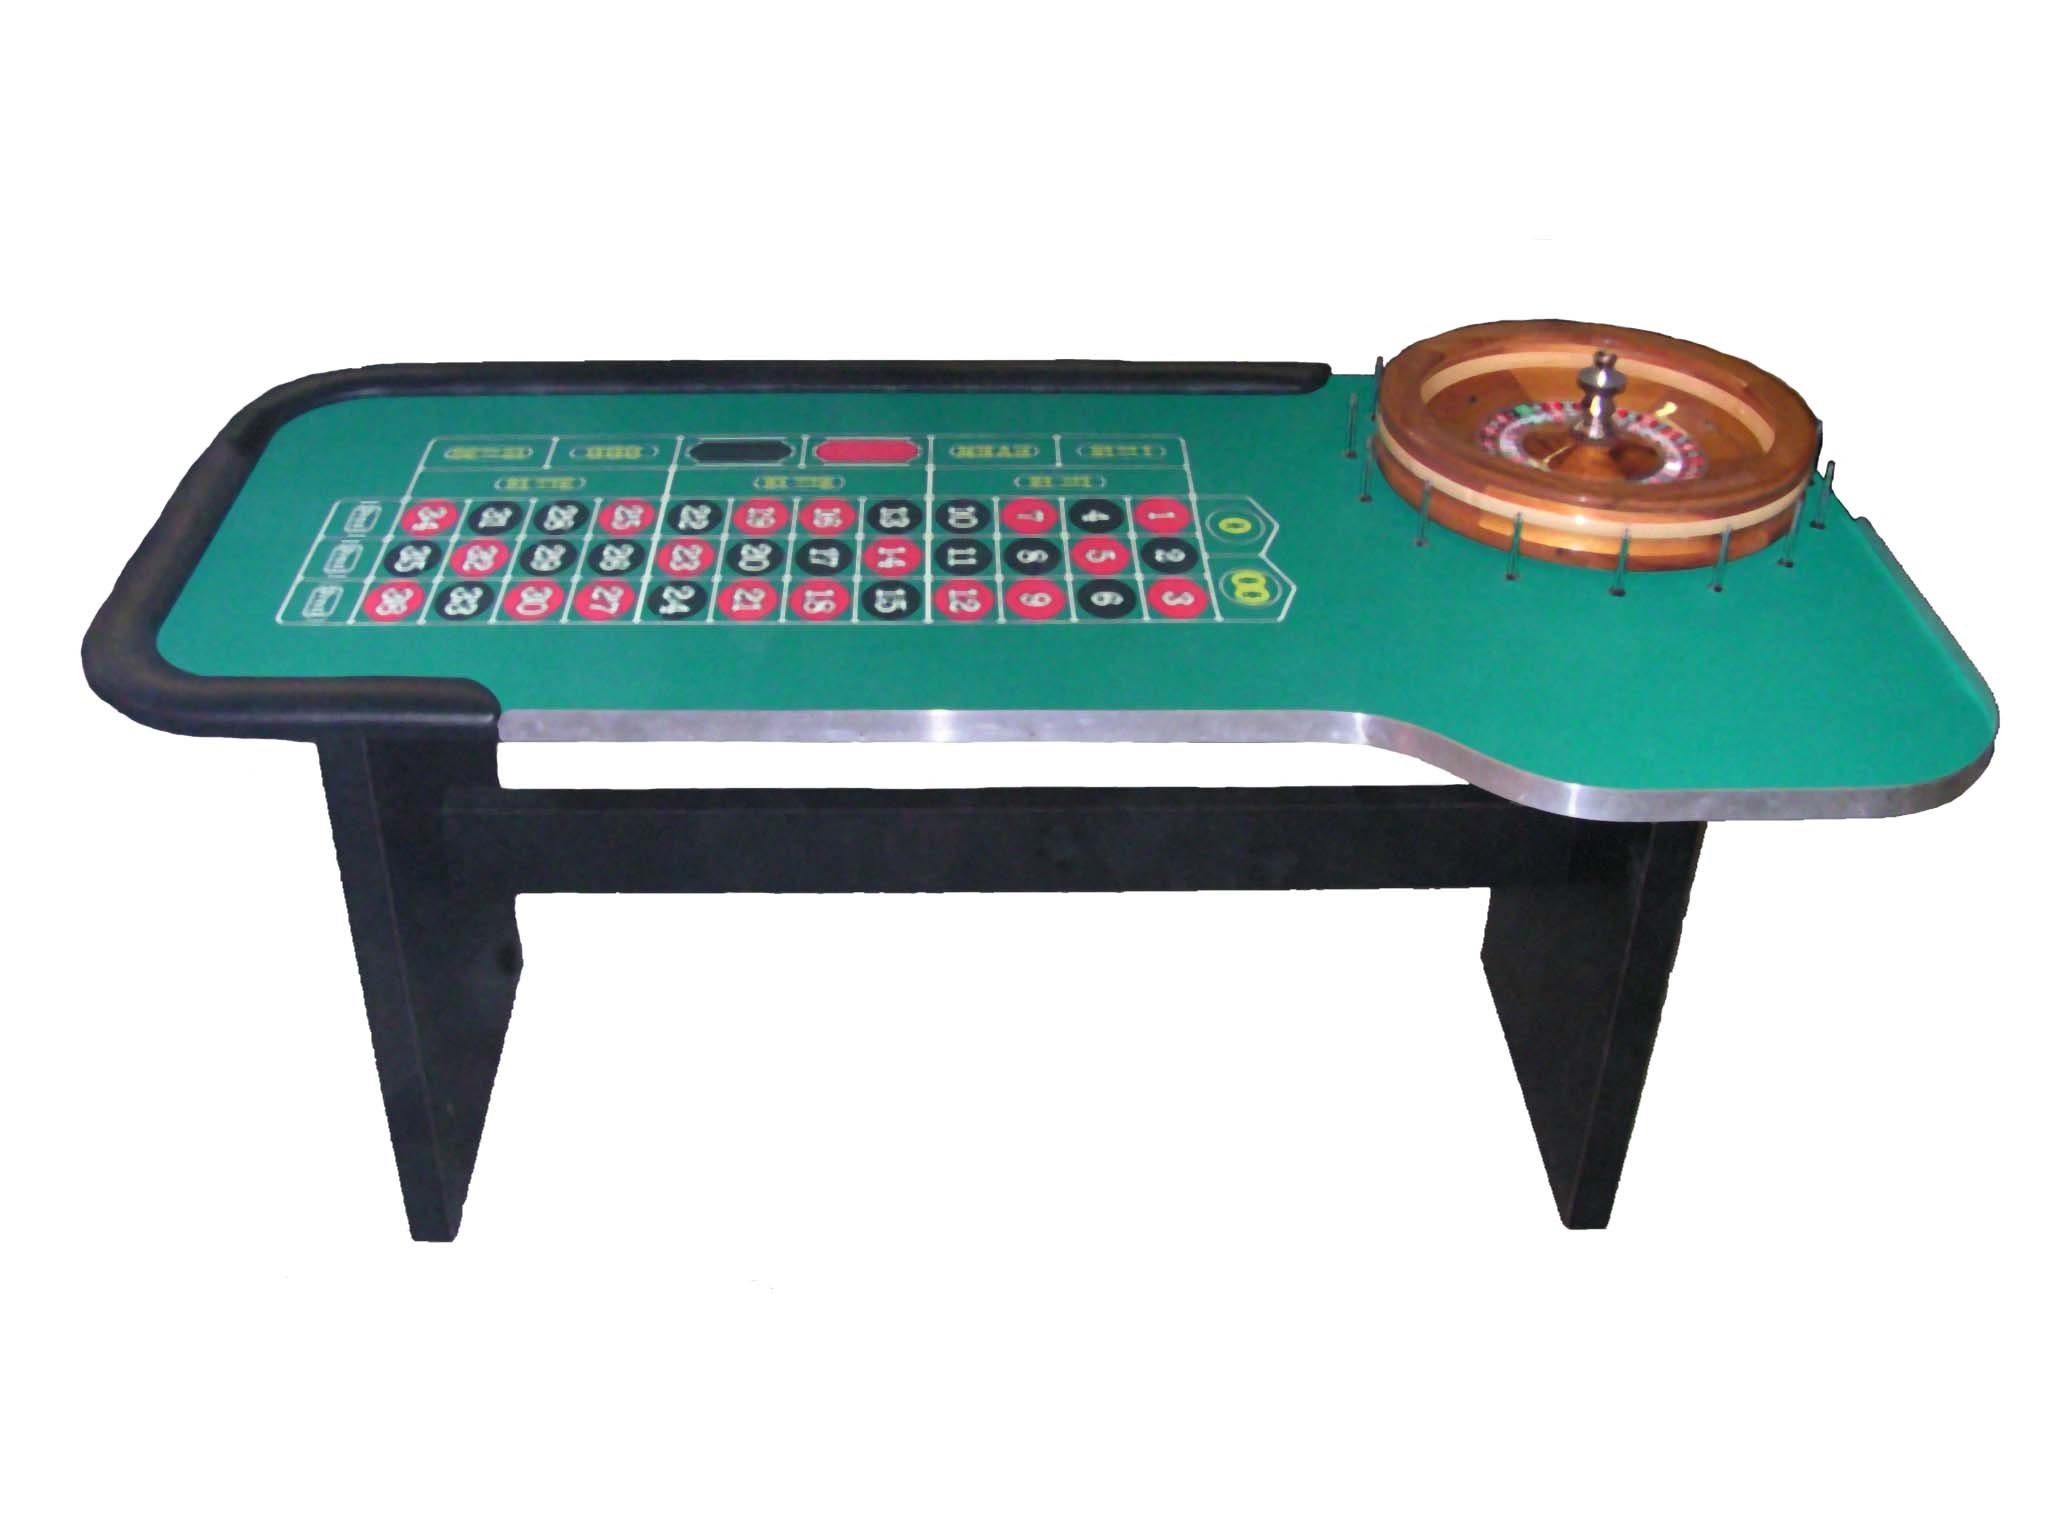 84 Inch Profesional Roulette Table & 22 Inch Roulette Wheel - Made in the USA